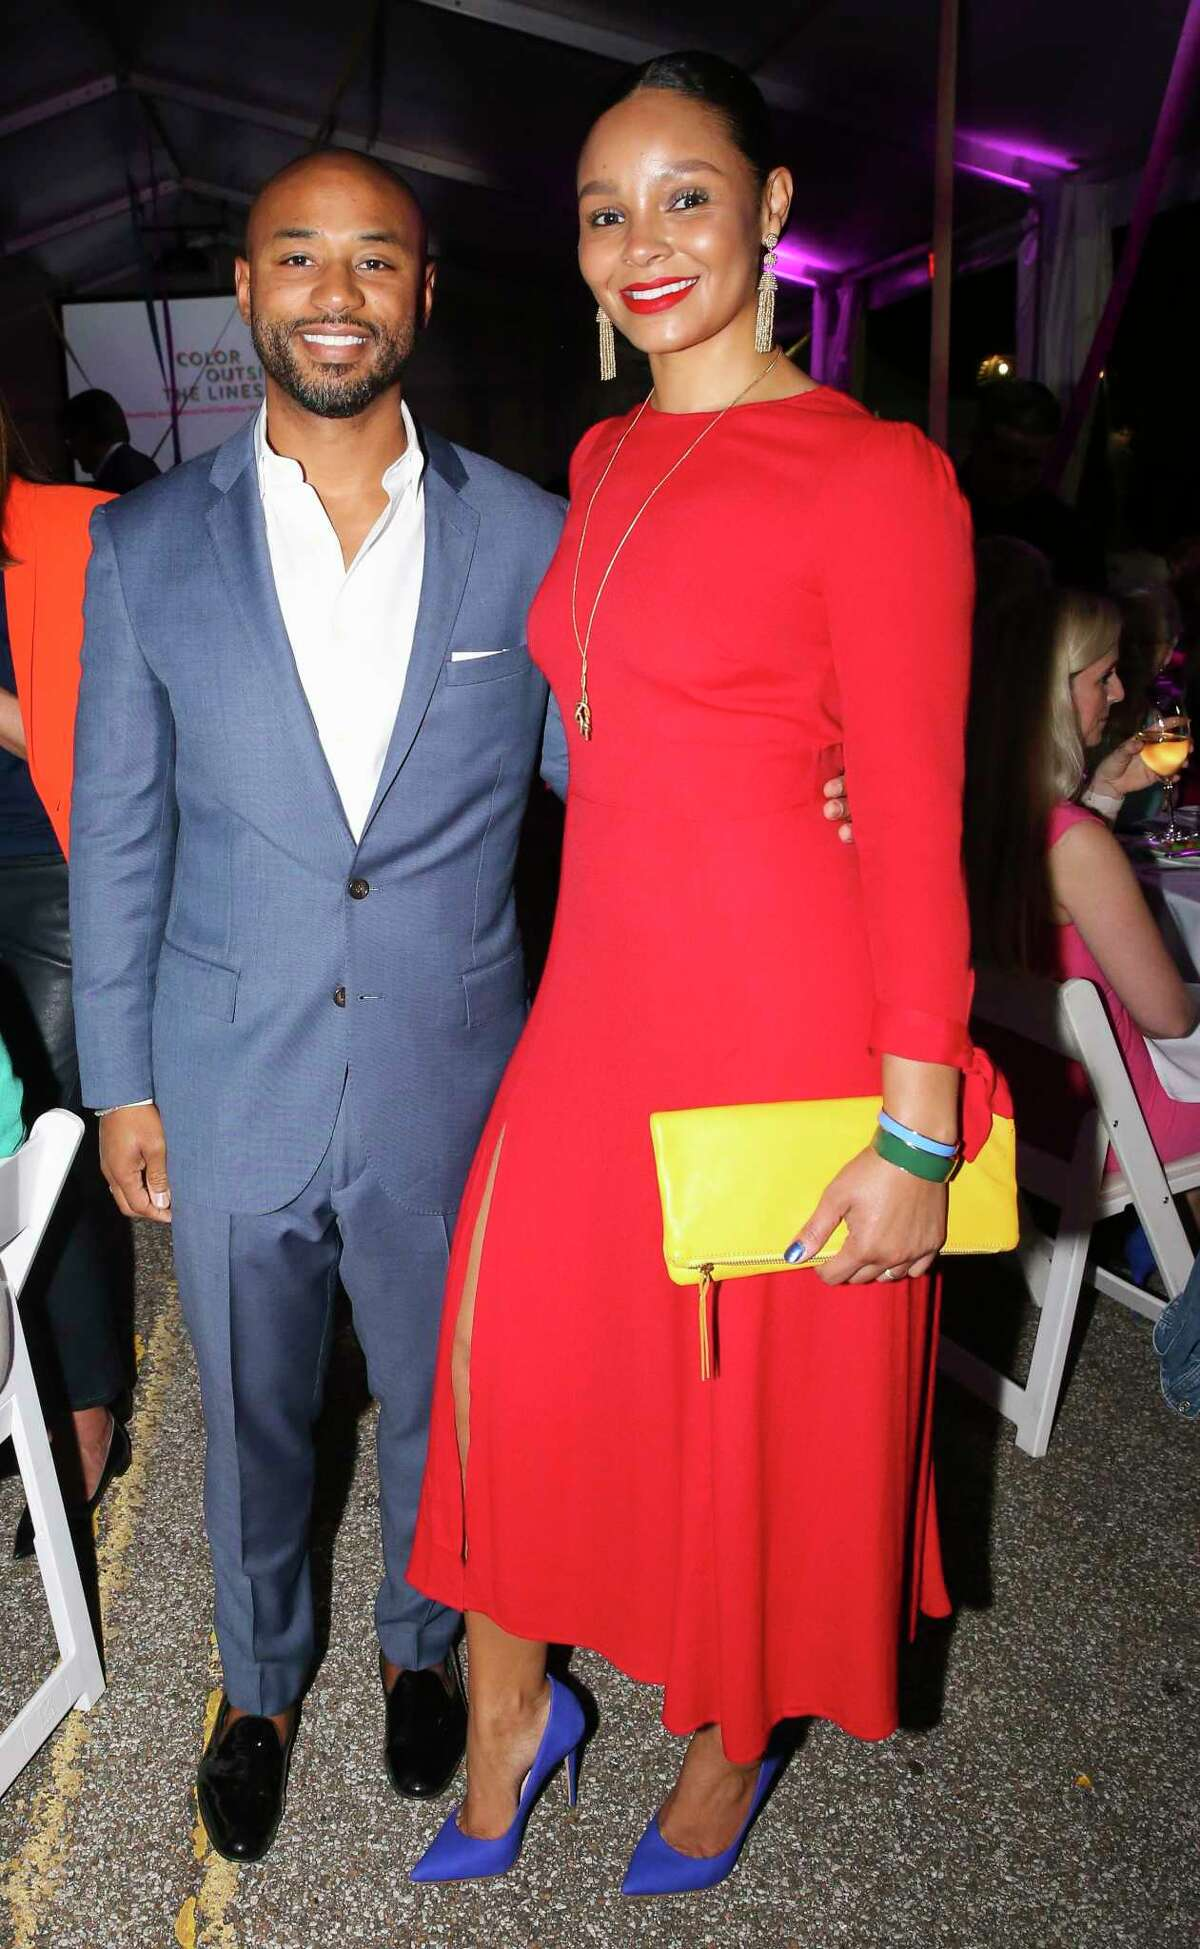 Paul and Tanisha Canning pose for a photograph at the